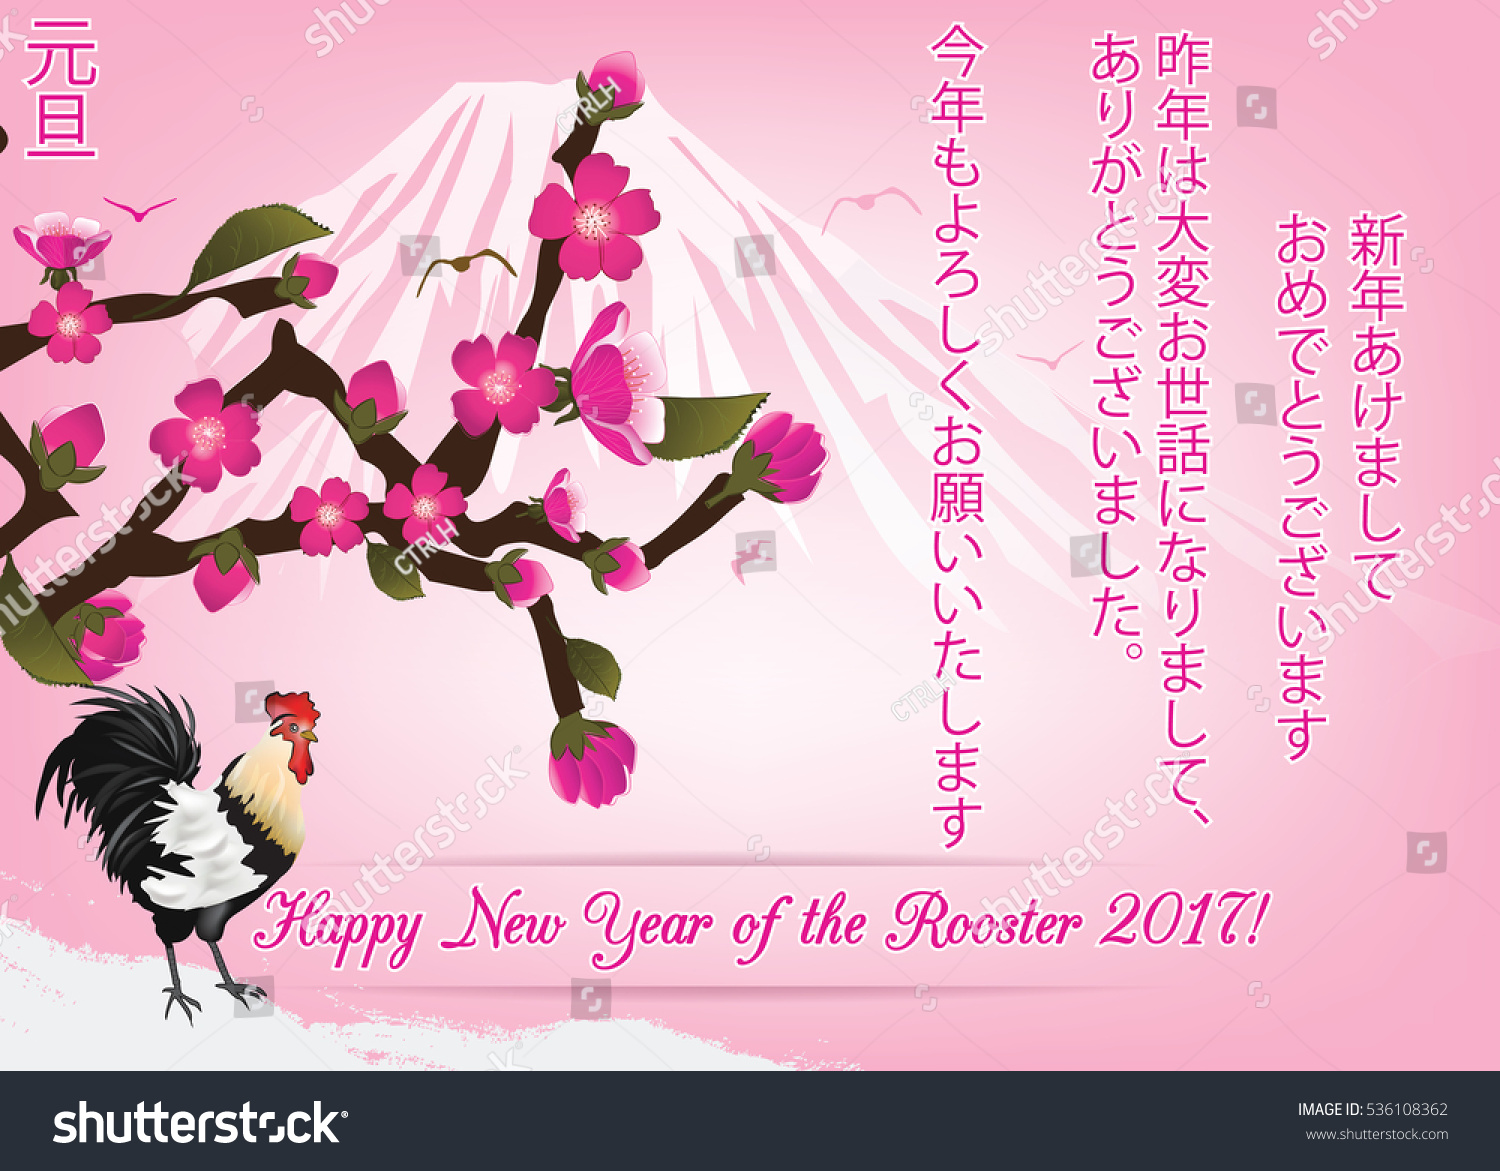 Japanese New Year Rooster Greeting Card Stock Illustration 536108362